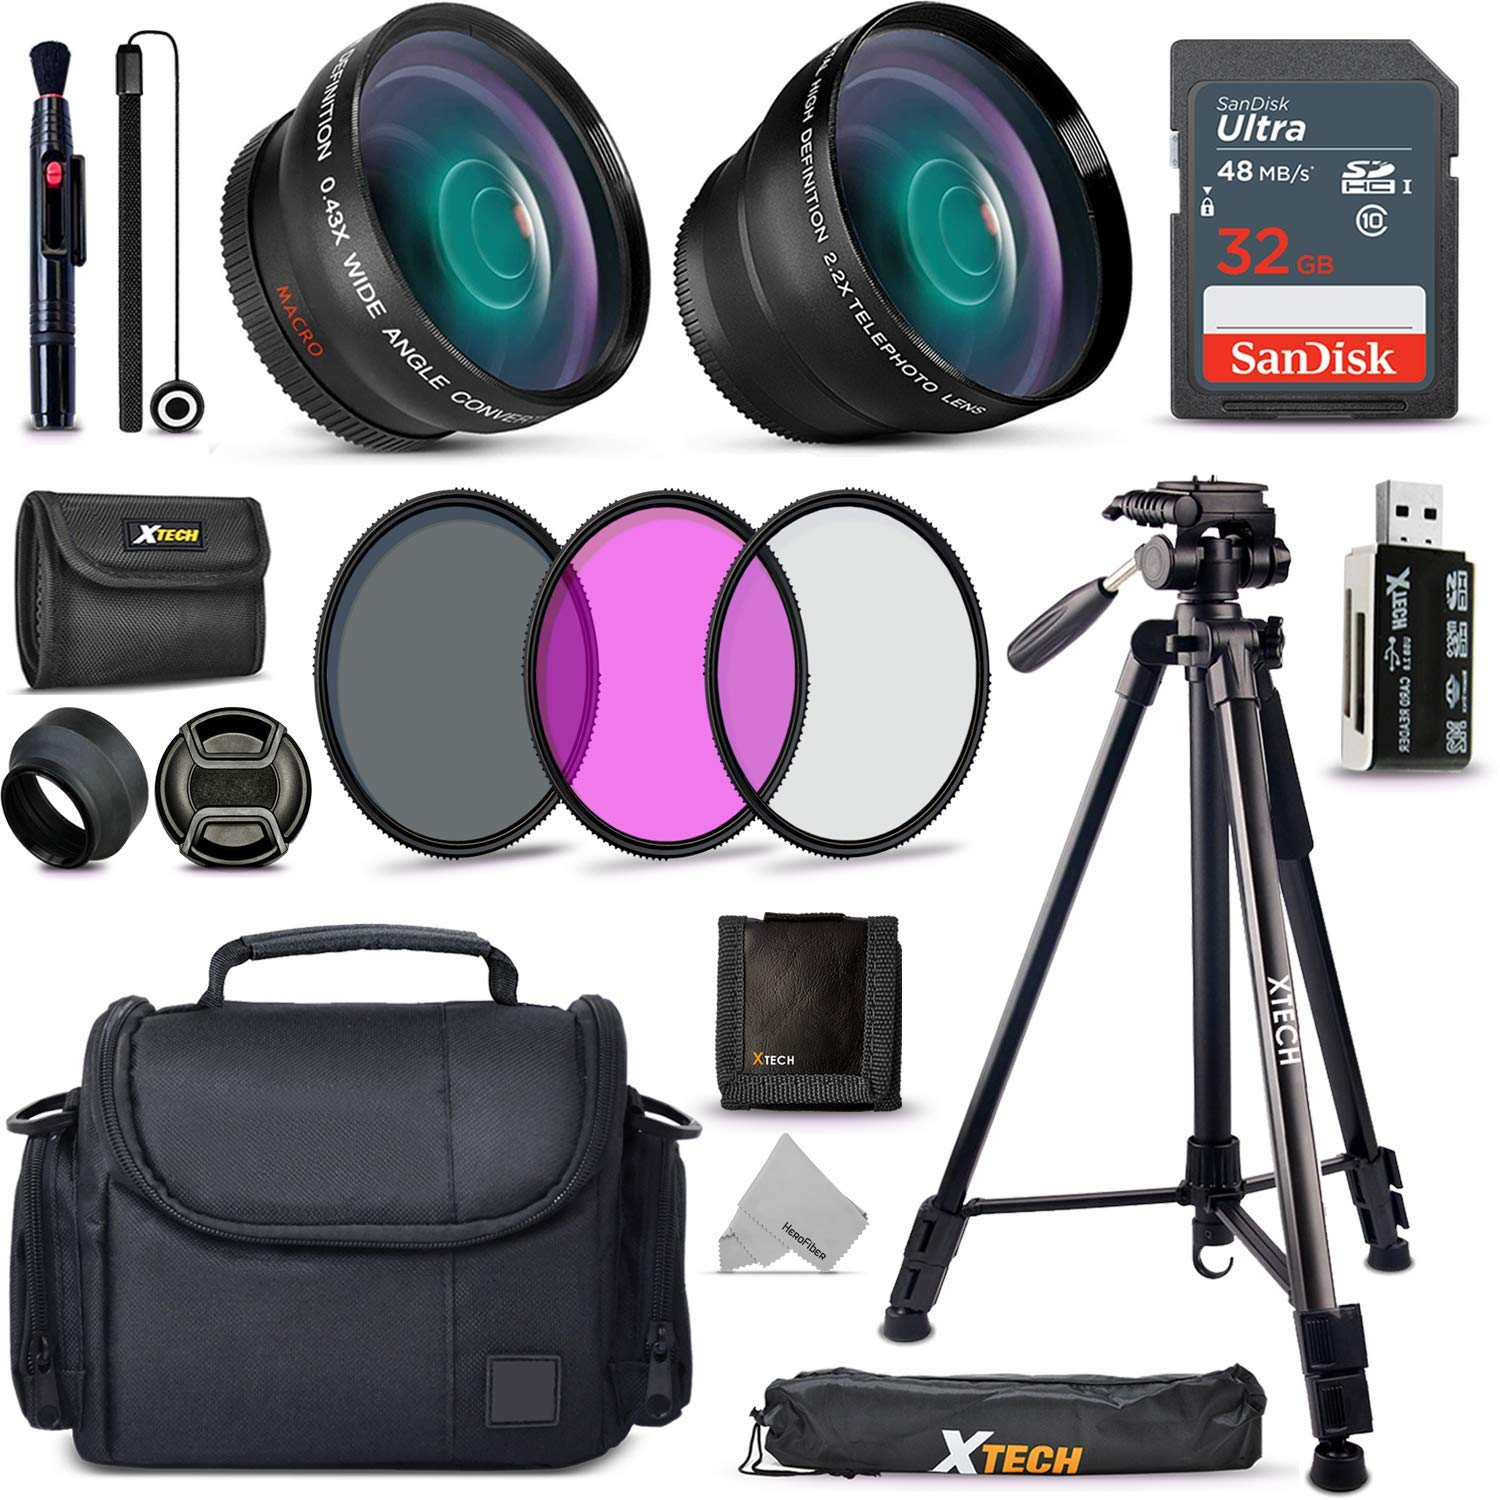 Xtech Accessory Kit for Canon Rebel T7, T7i, T6, T6i, T5, T5i SL1, SL2, SL3, EOS 70D, 77D, 80D DSLR Camera Includes 58mm Wide / 2X Telephoto Lens, Filters, Case, 72'' Tripod, Accessories Bundle + More by HeroFiber